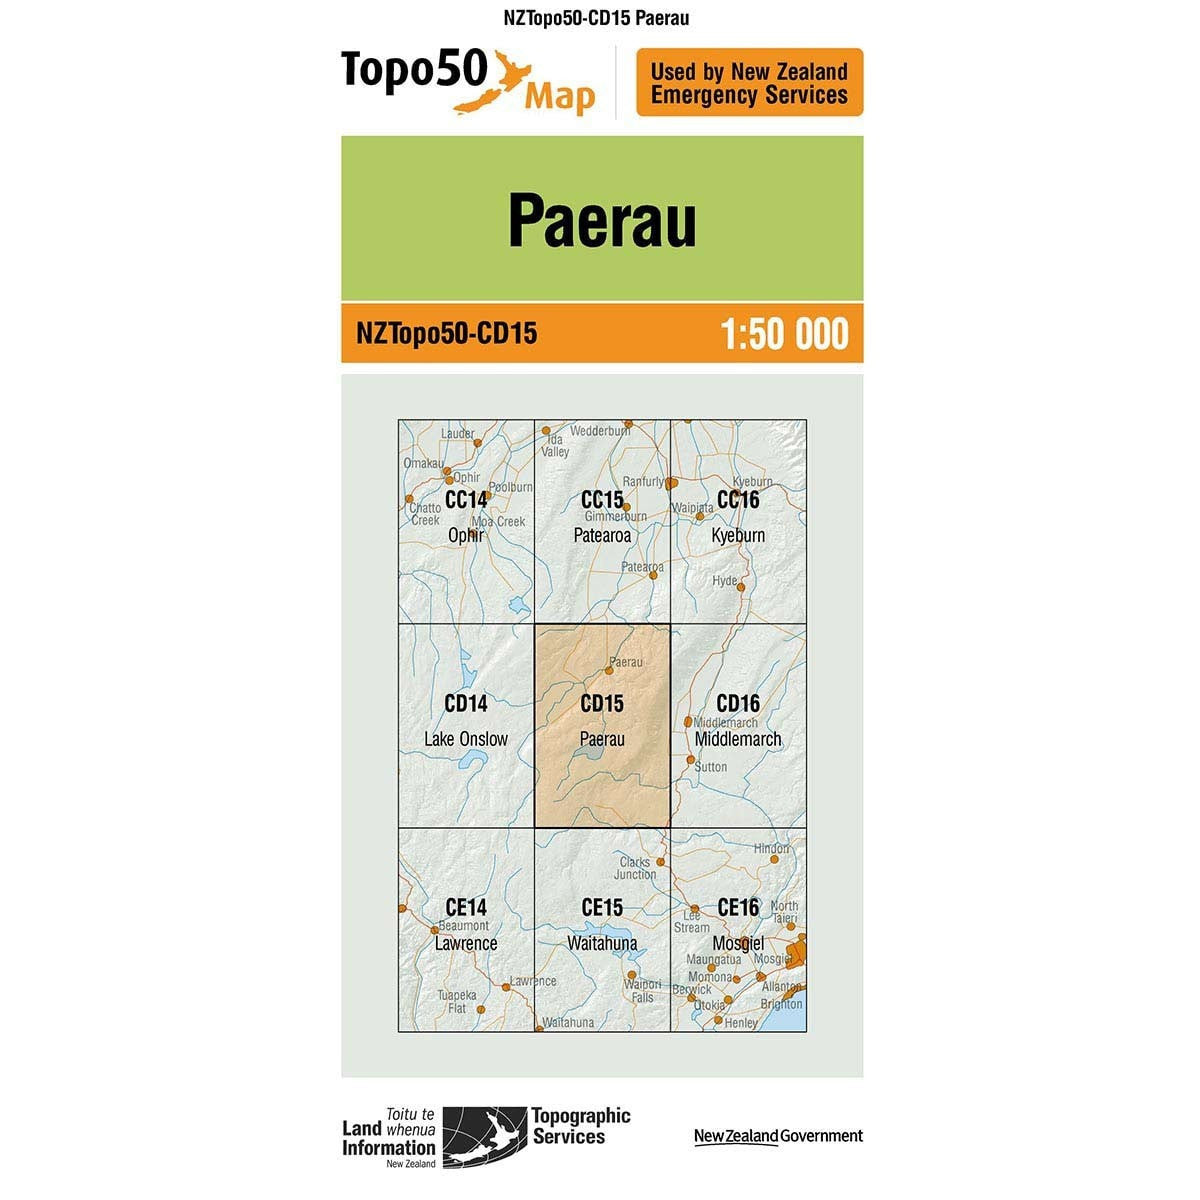 Buy Topo50 CD15 Paerau NZ | NZ's Best Trail Running and Crossfit | Highbeam.co.nz - Get out there and go for a run!